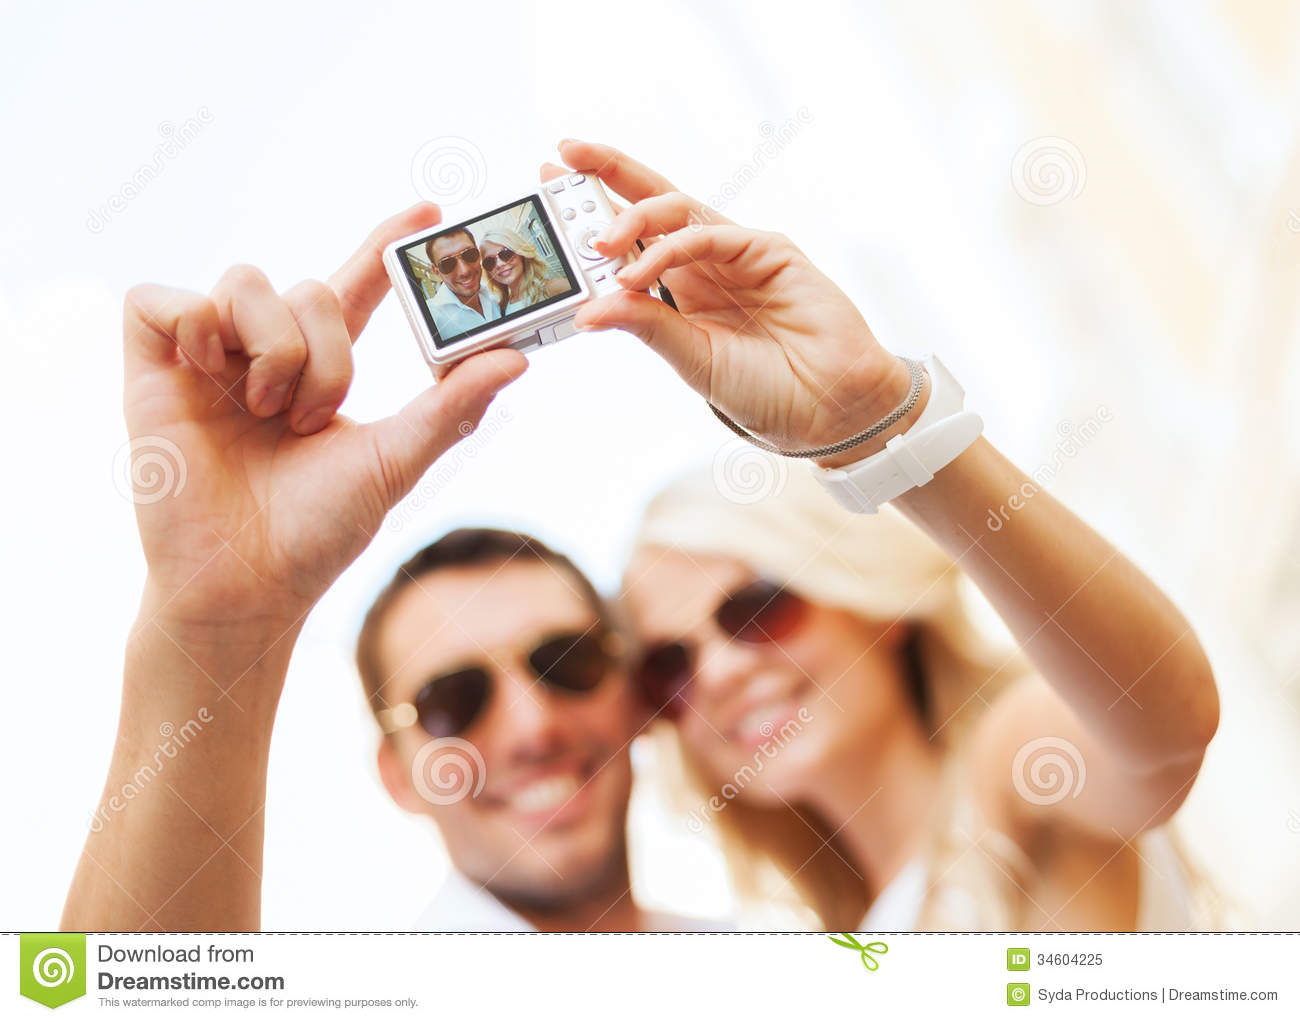 travel dating free Chat and find travel companions worldwide talk to singles and search for online dating opportunities it's your best way to start an international online relationship.